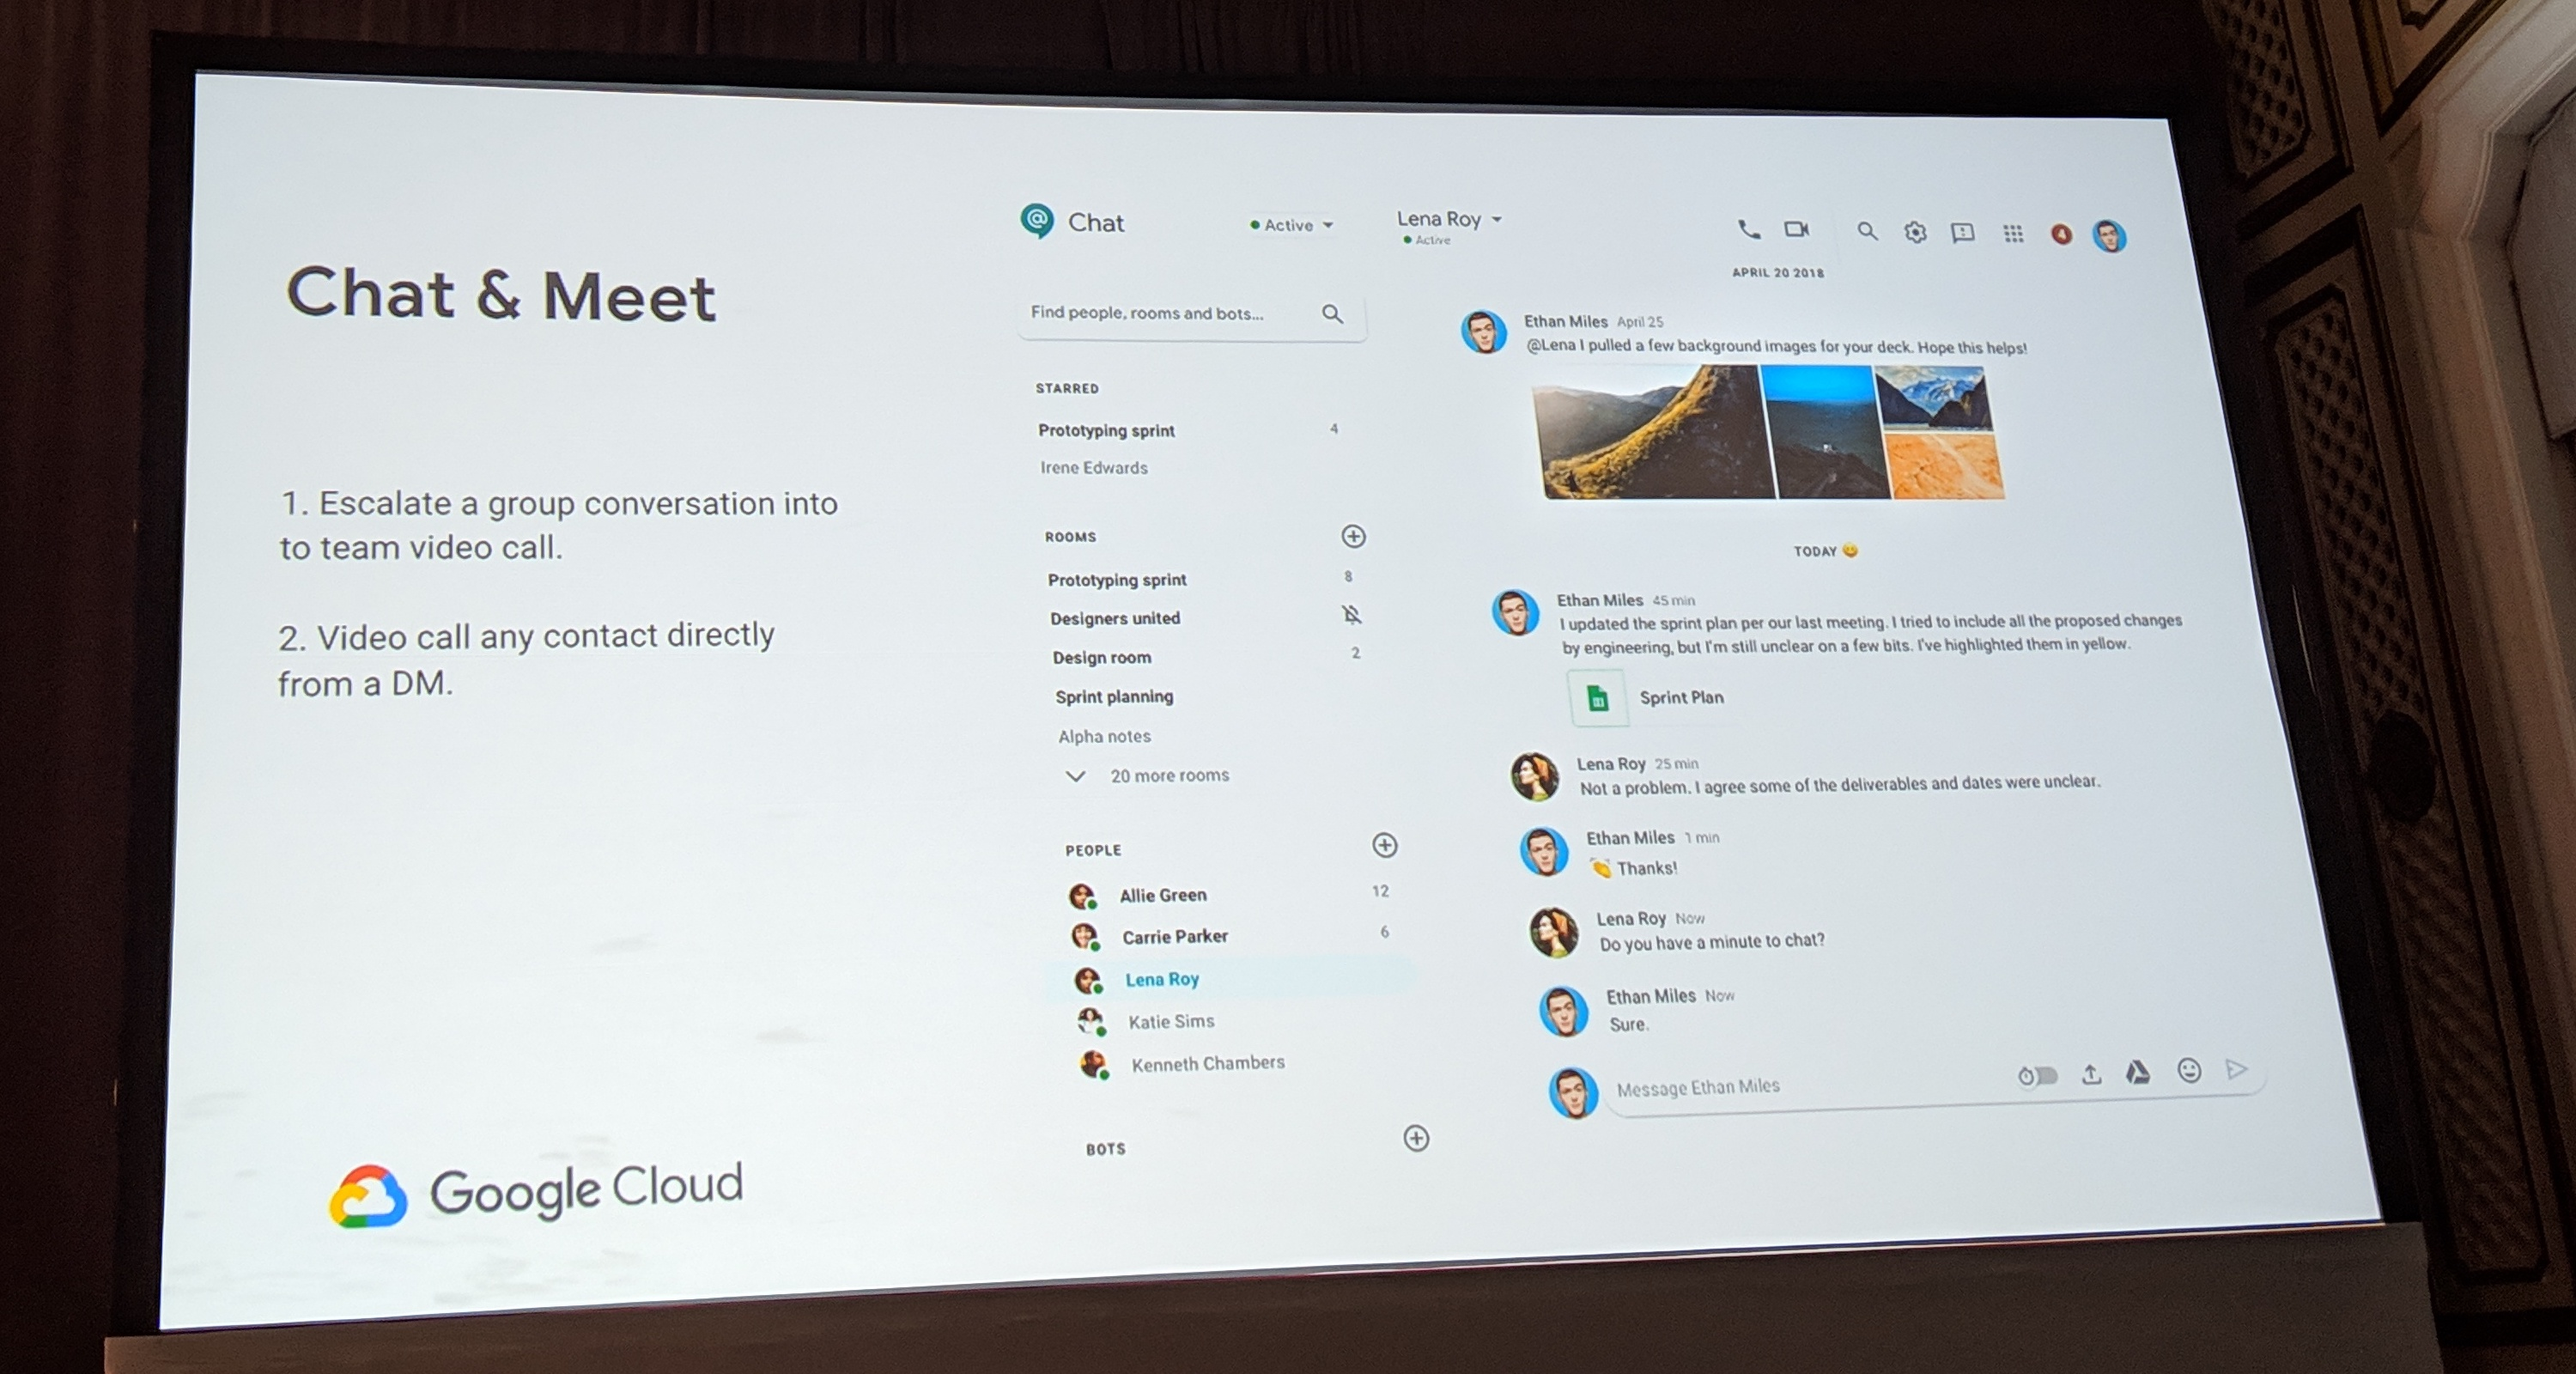 Google details new Hangouts Chat features coming soon - 9to5Google